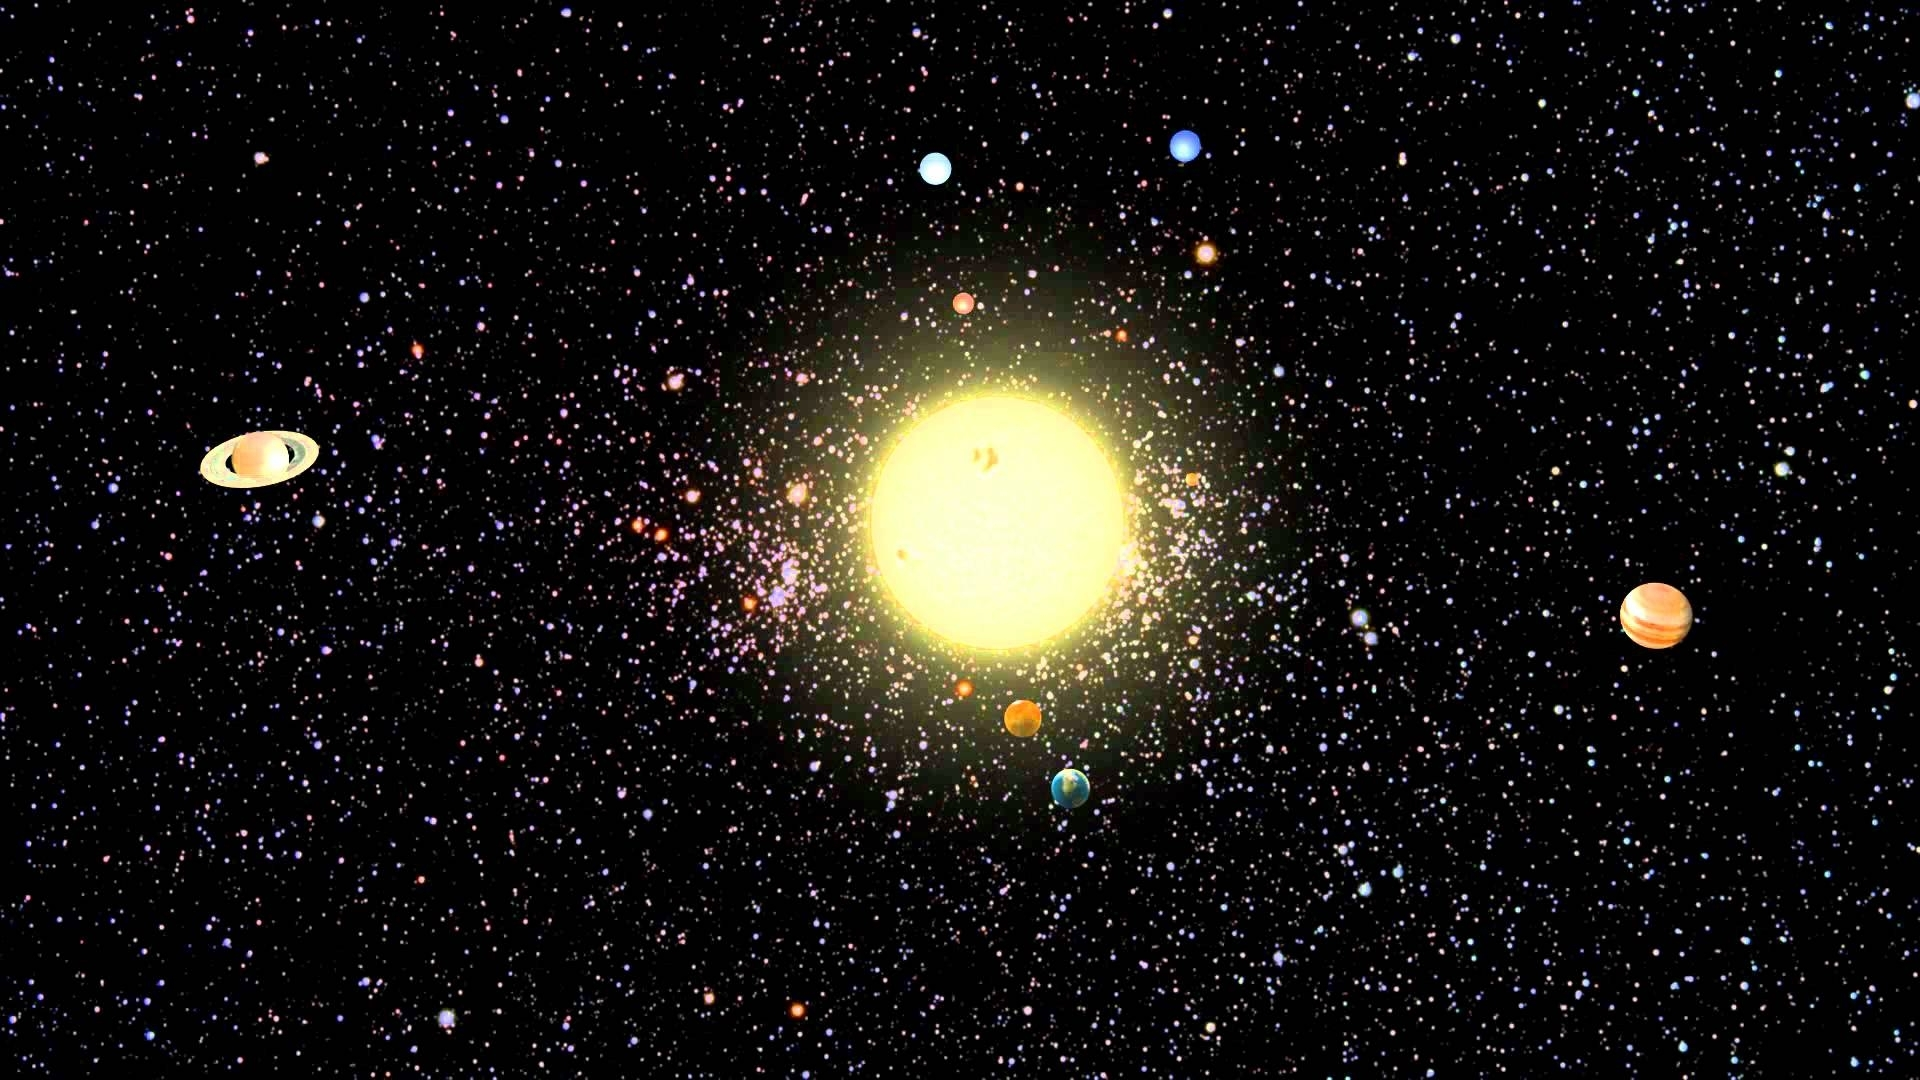 10 top solar system 1080p wallpaper full hd 1920 1080 for - Solar system hd wallpapers 1080p ...